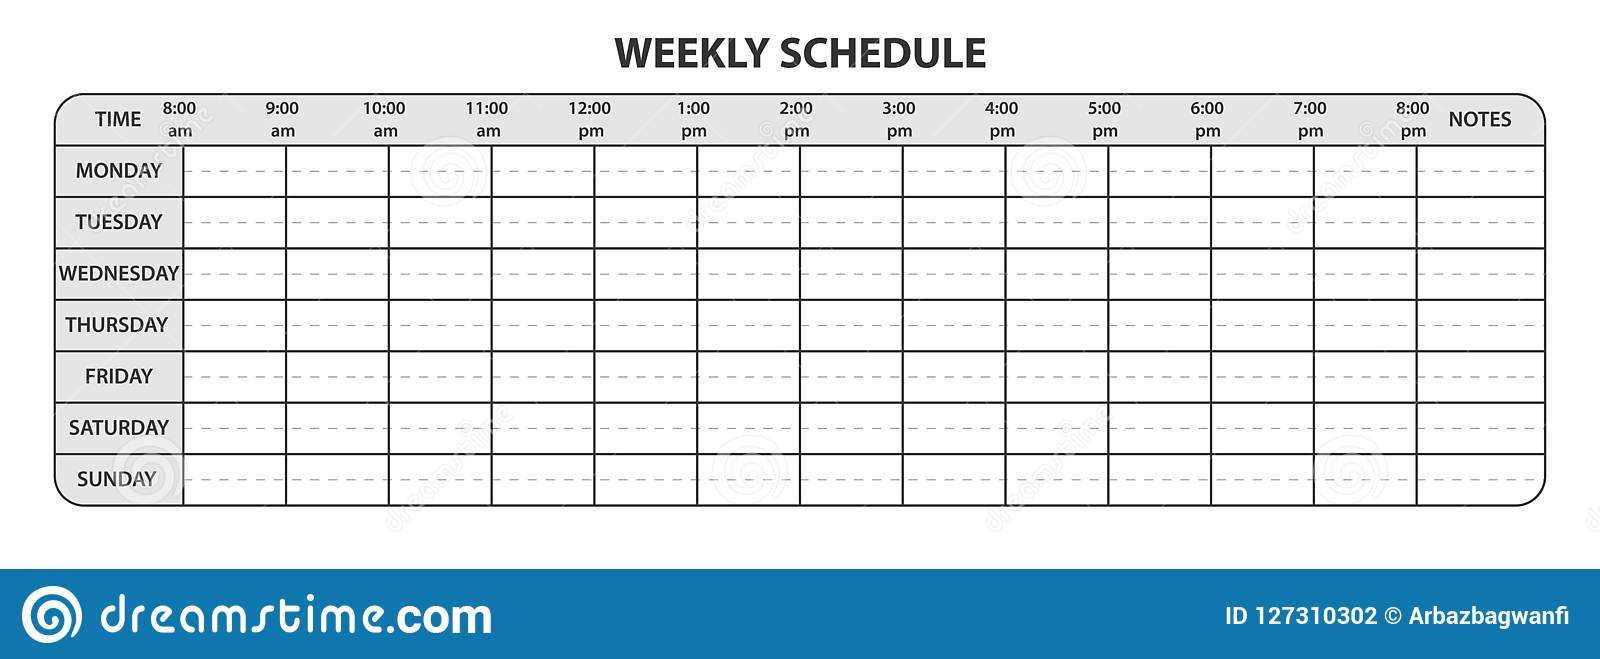 weekly schedule with working hours and extra space for notes stock